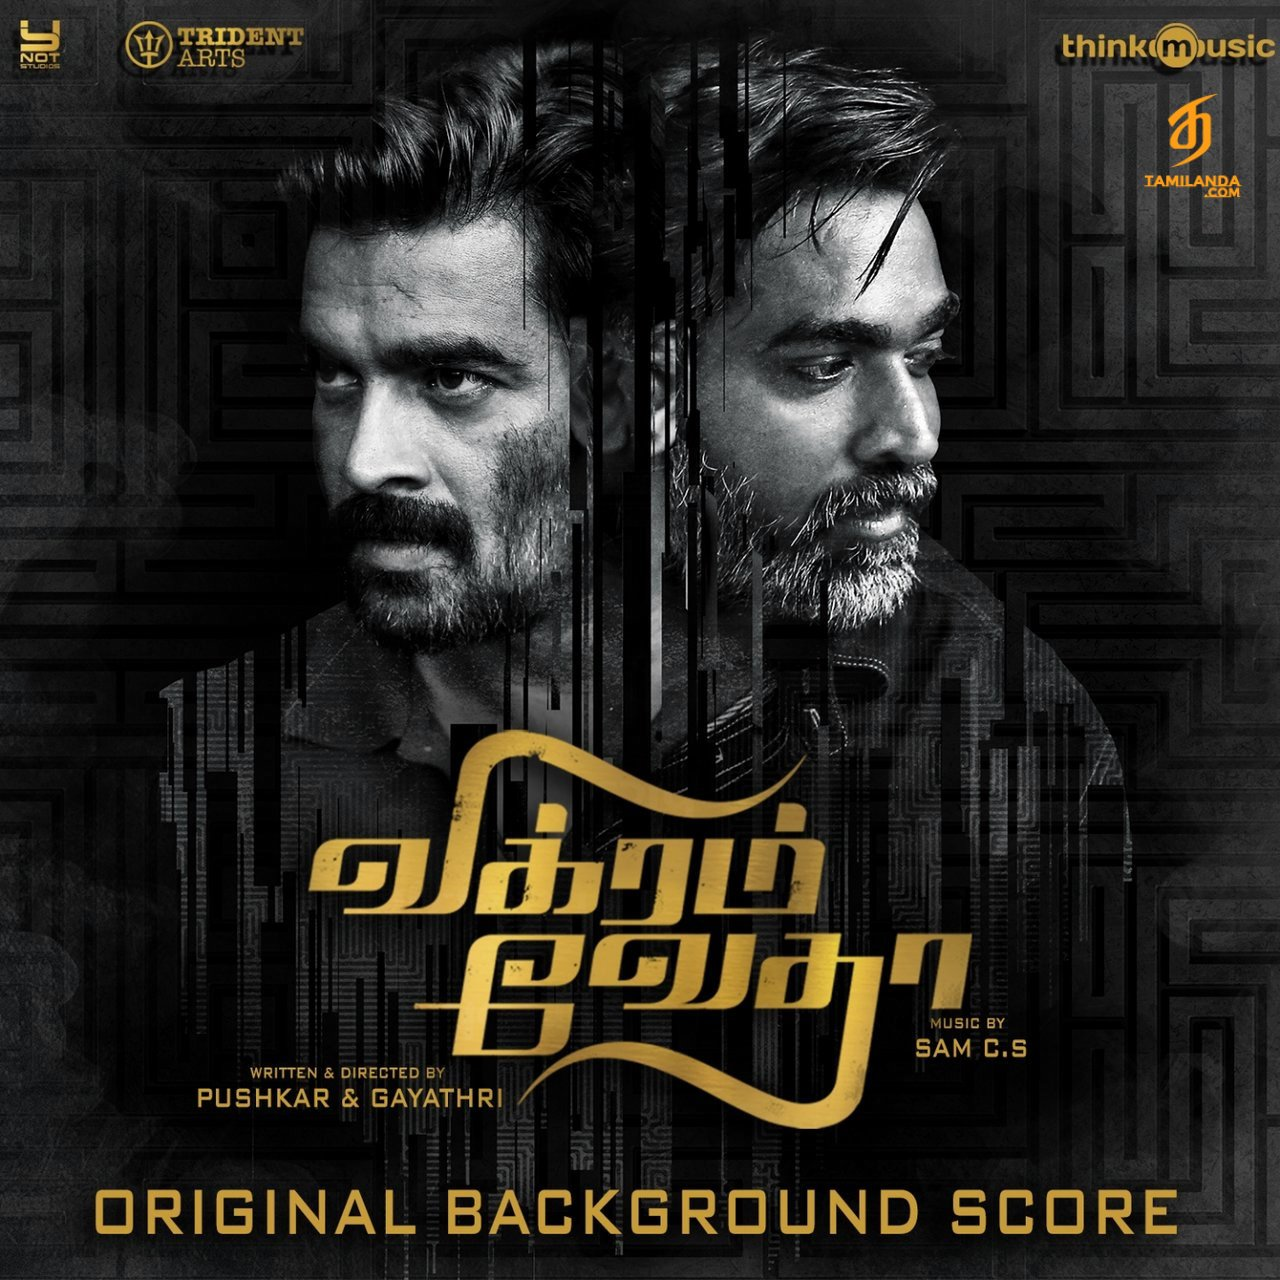 Vikram Vedha (Original Background Score) FLAC Album